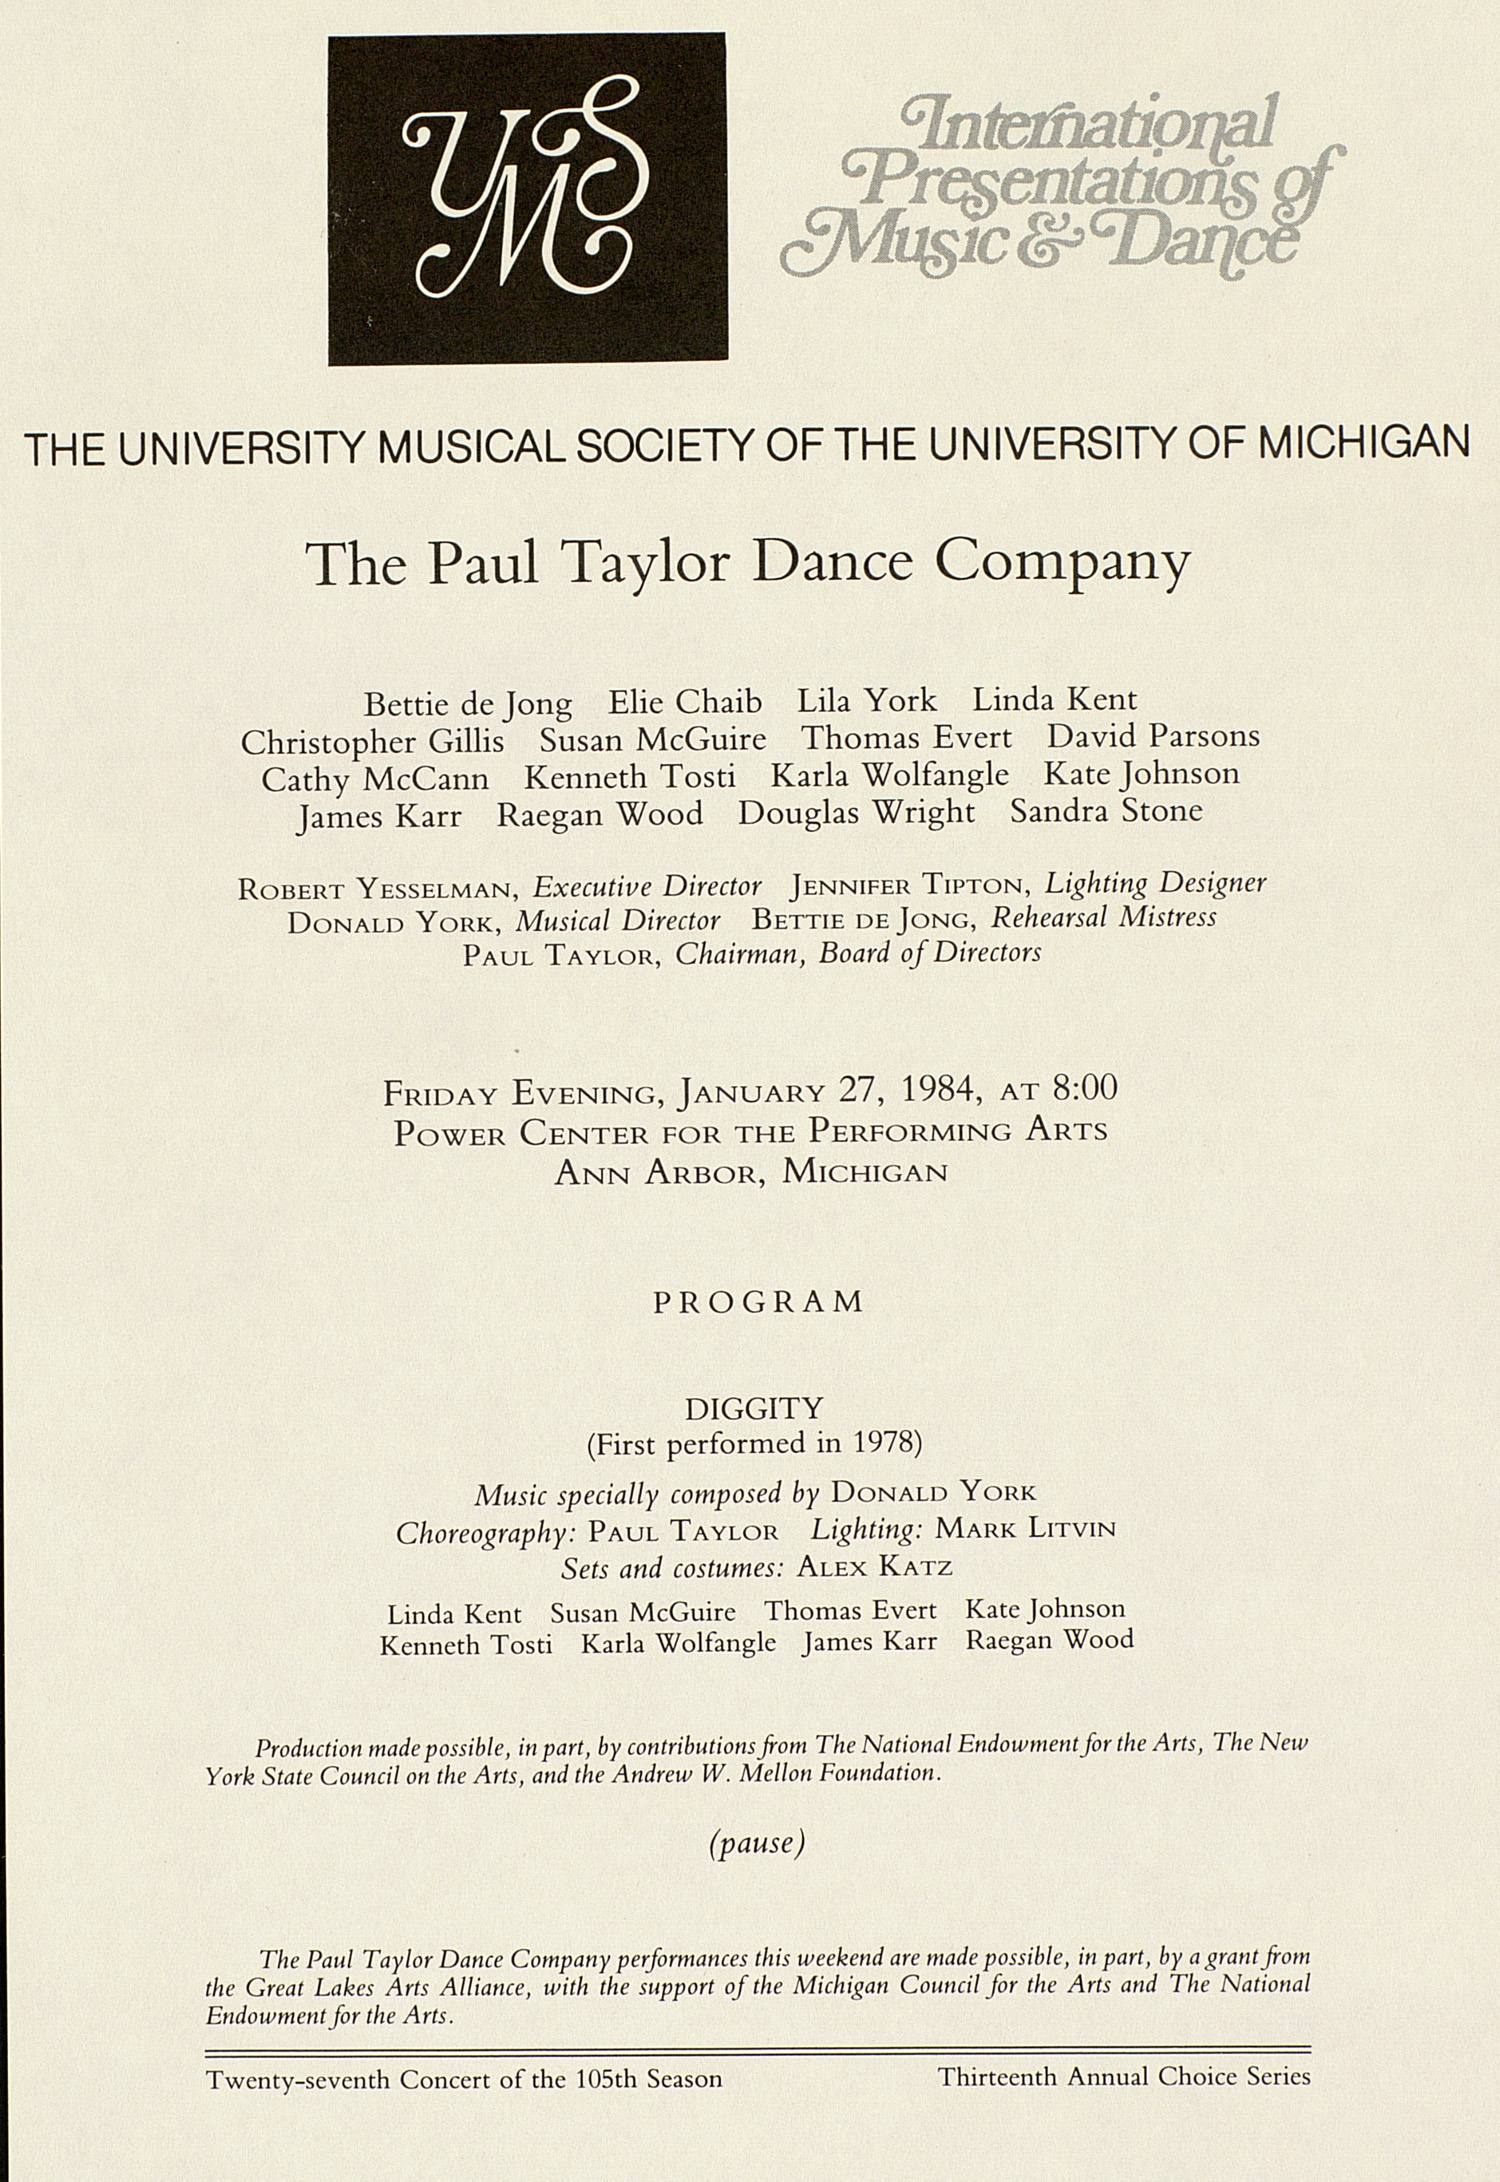 UMS Concert Program, January 27, 1984: International Presentations Of Music & Dance -- The Paul Taylor Dance Company image